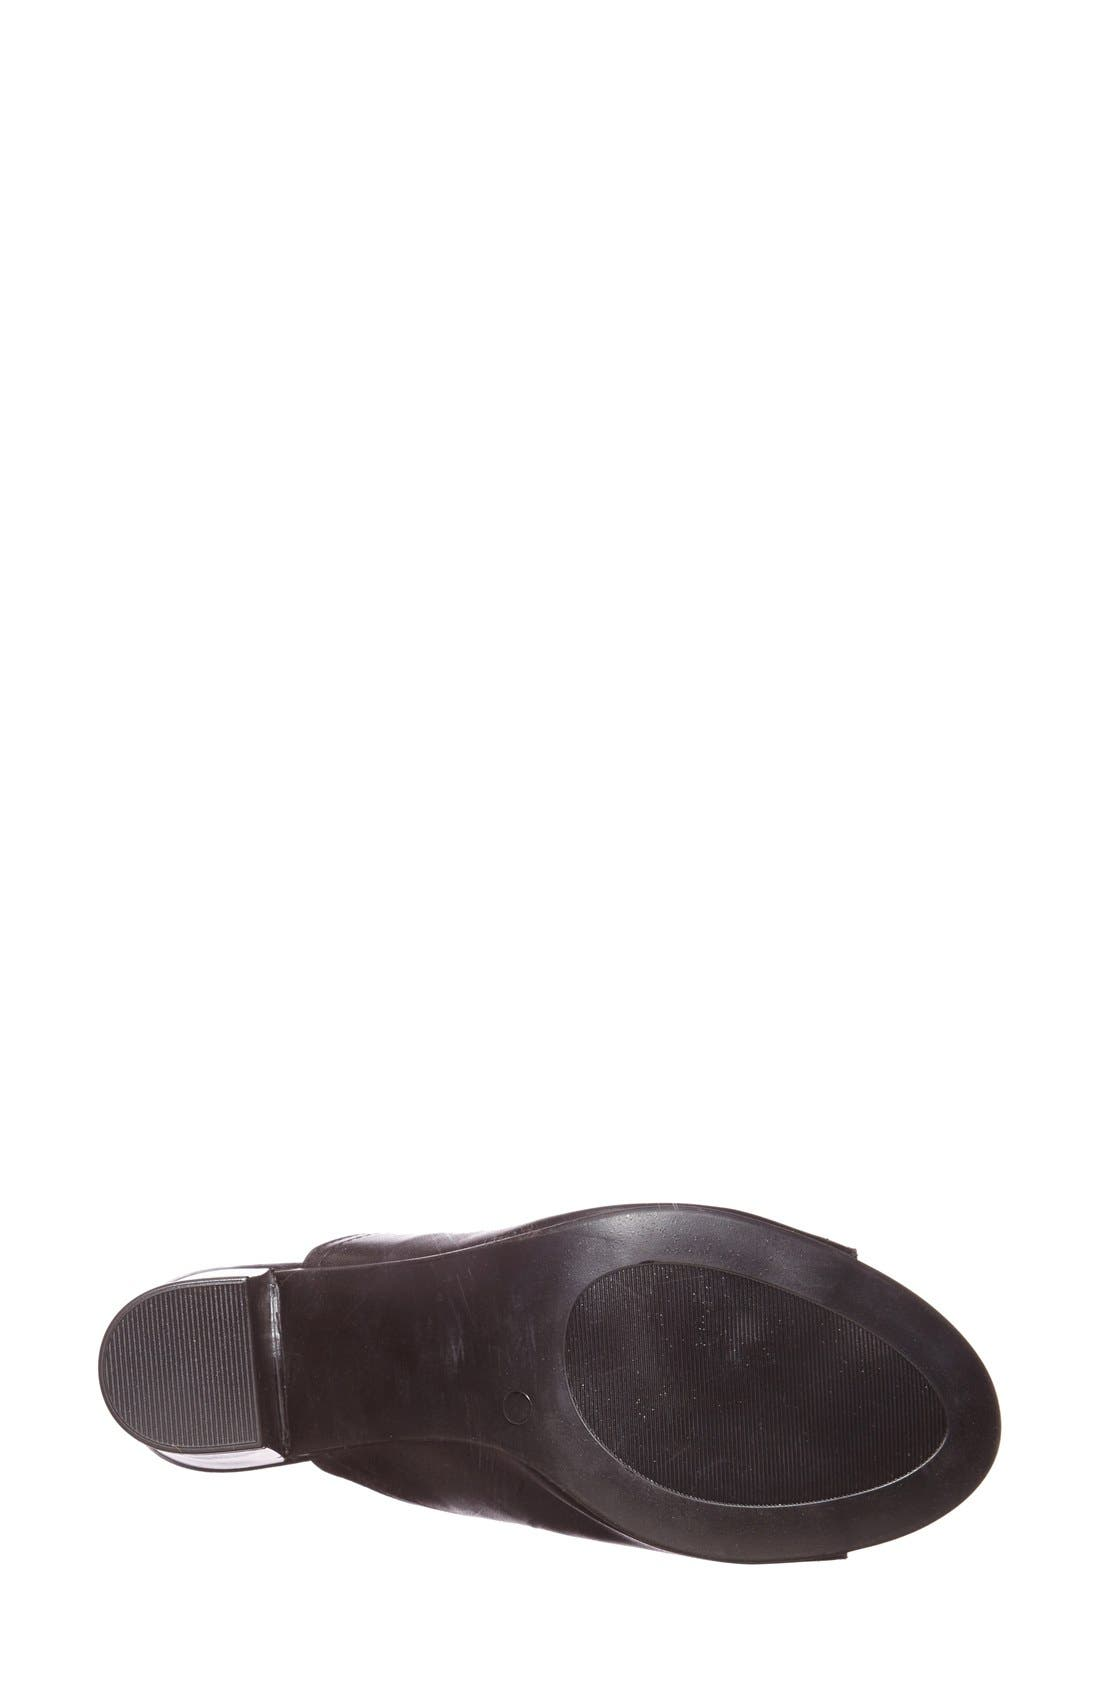 'Arno' Leather Mule,                             Alternate thumbnail 11, color,